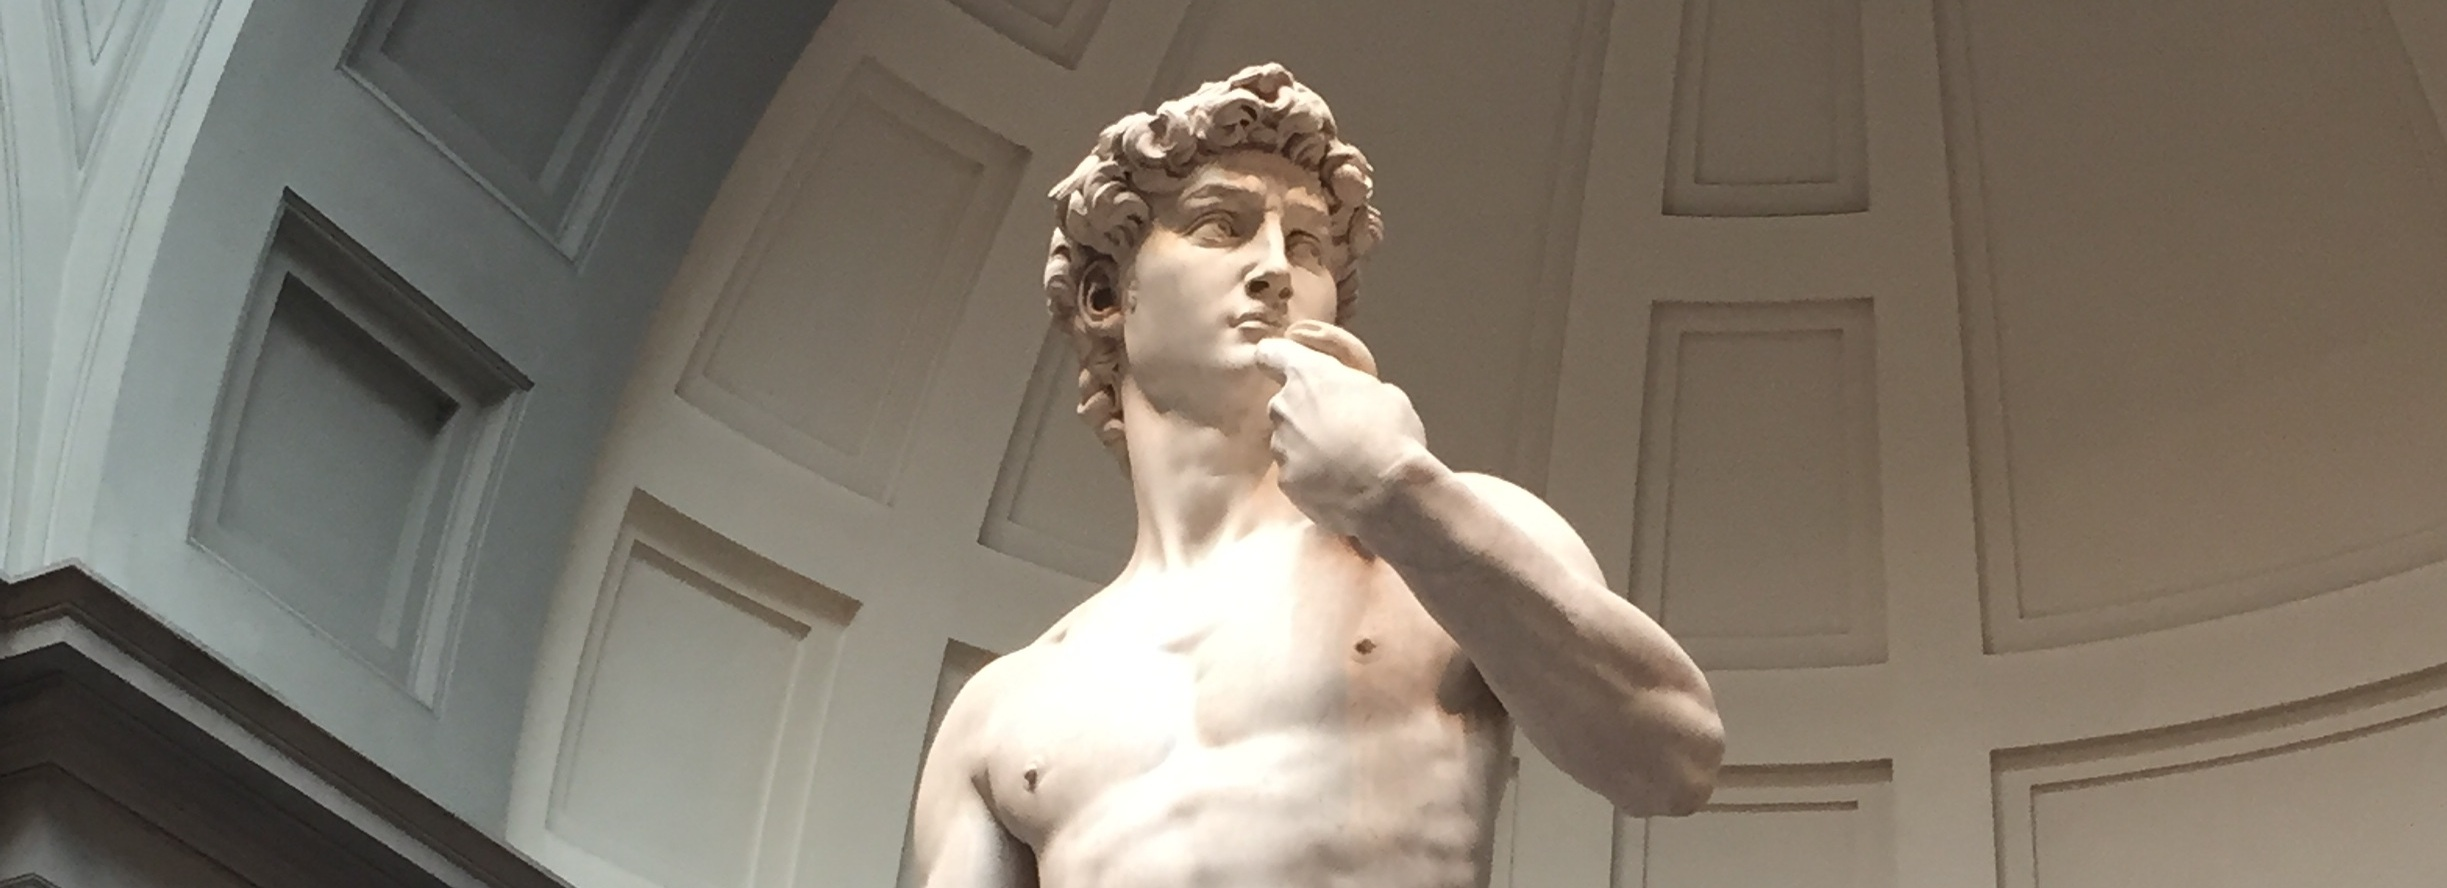 michelangelo david florence sculpture.jpg